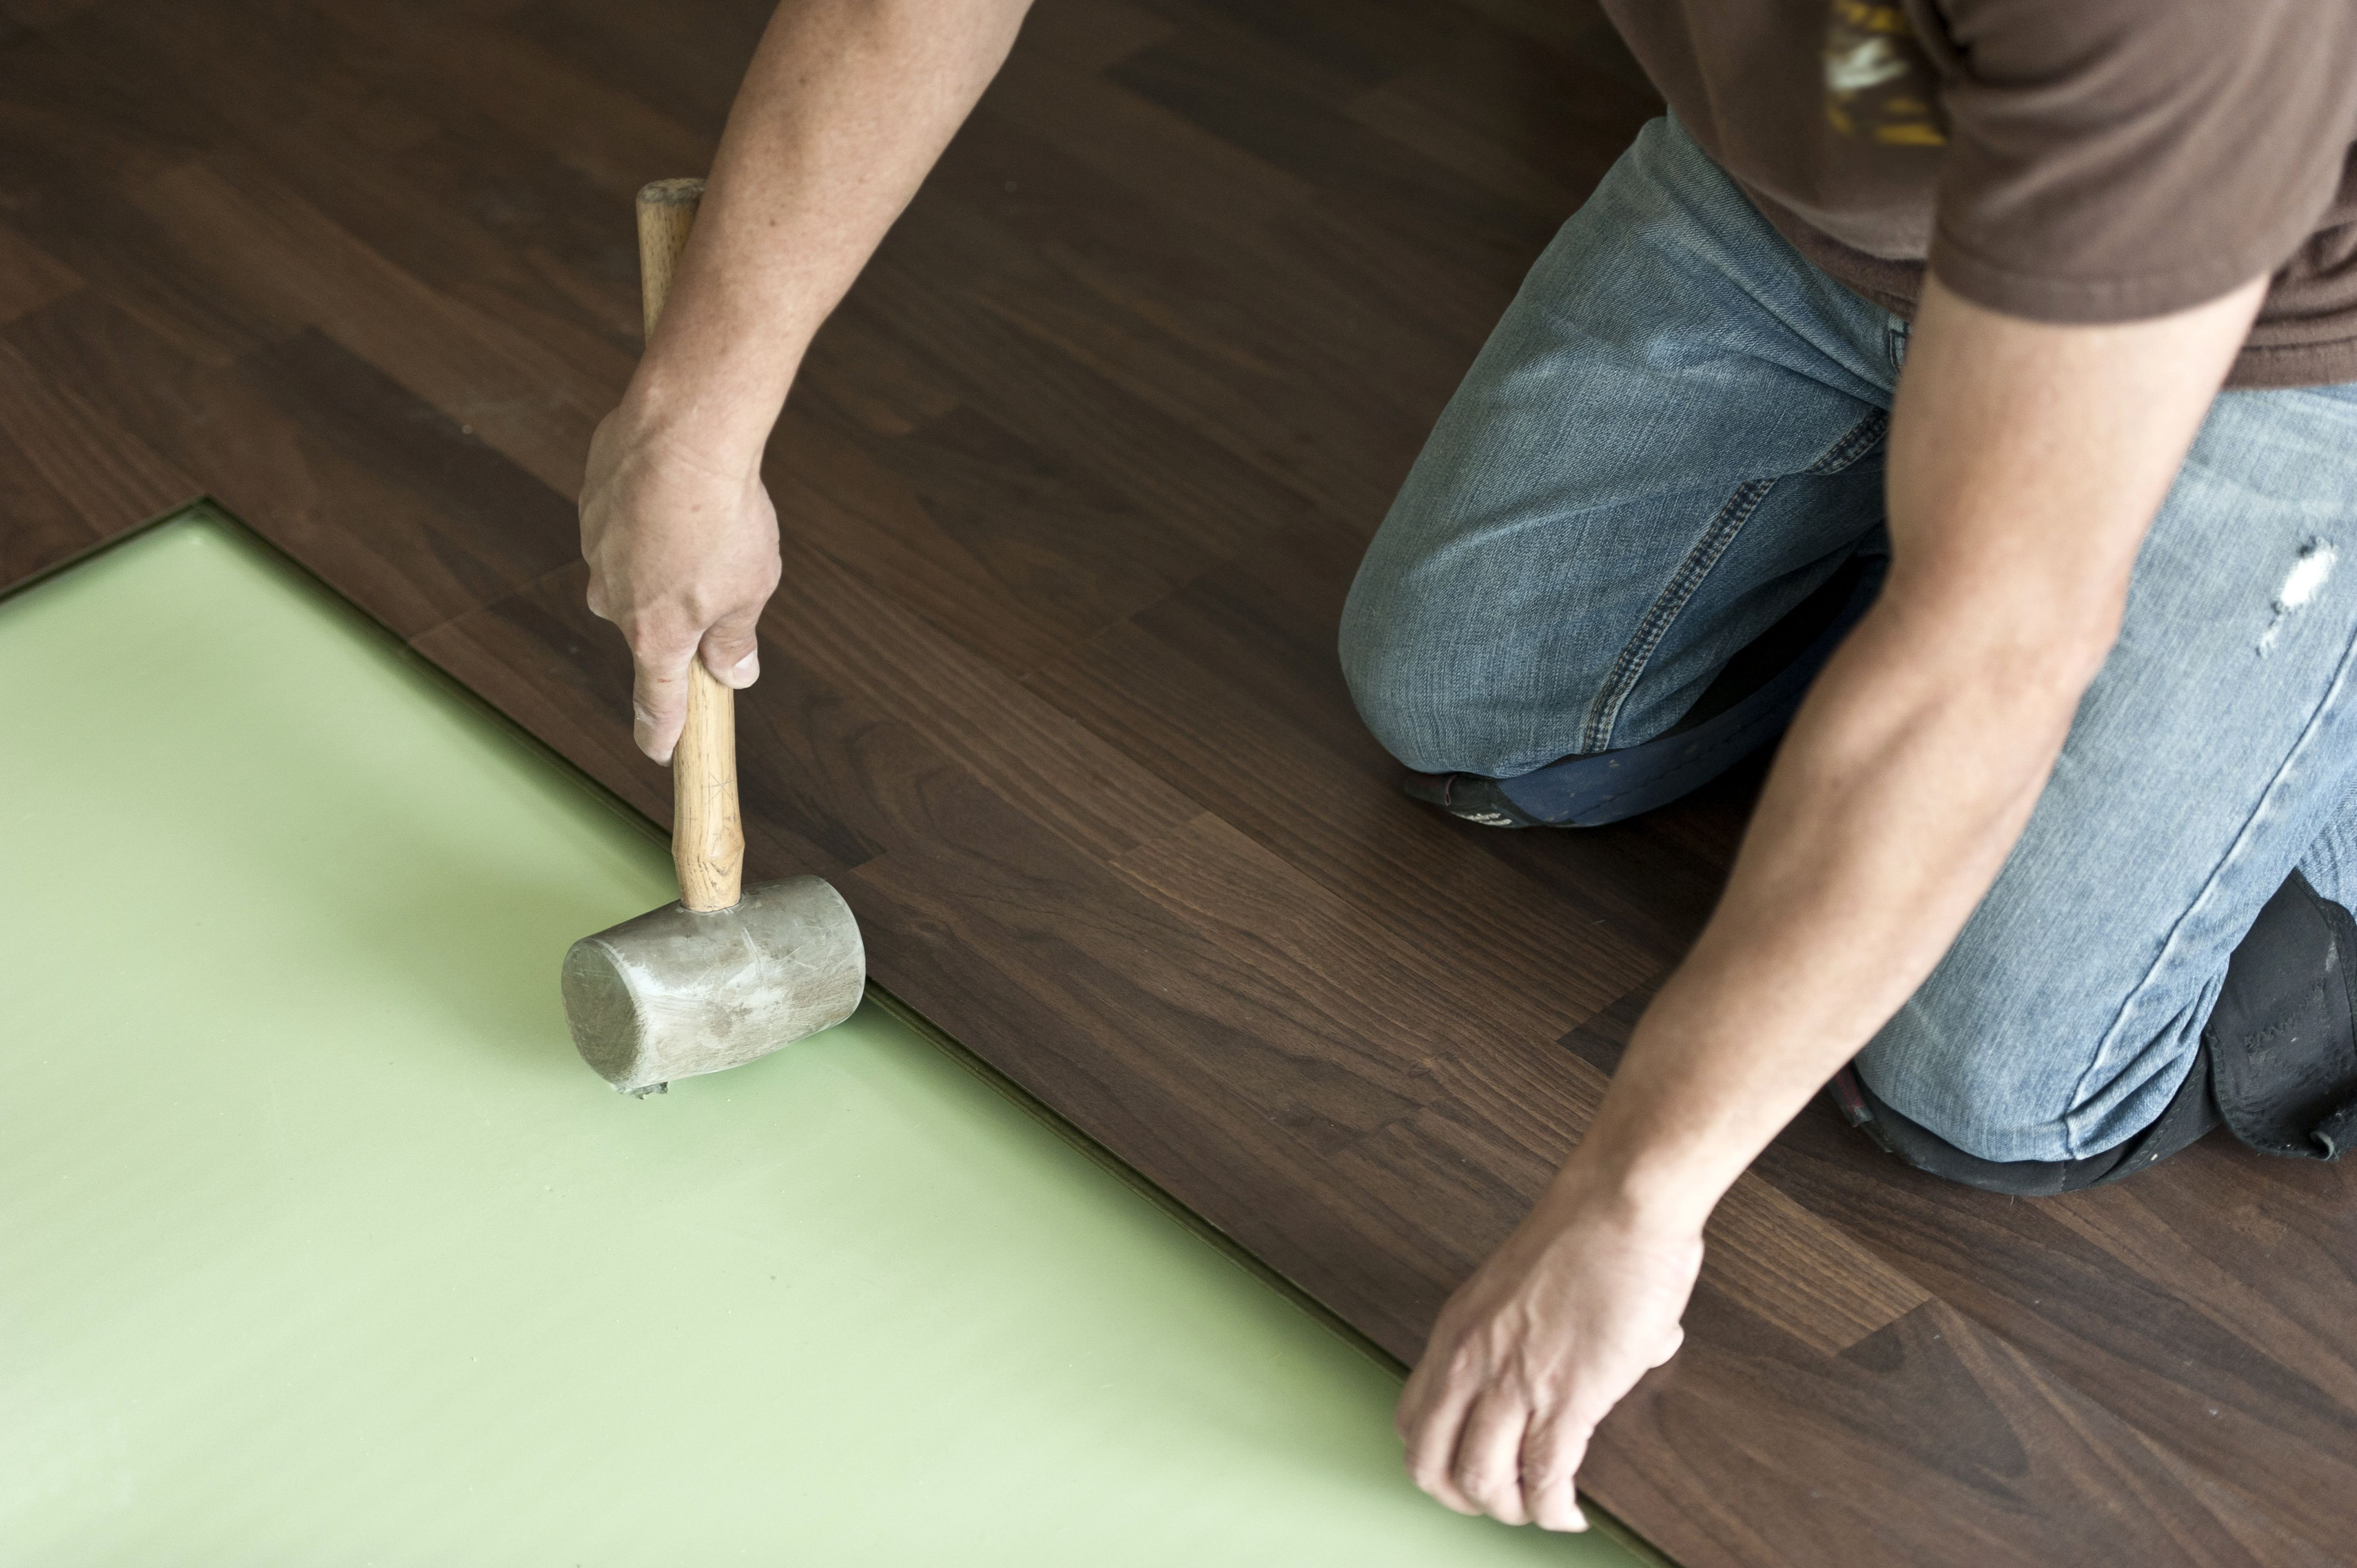 5 8 vs 3 4 hardwood flooring of can a foam pad be use under solid hardwood flooring intended for installing hardwood floor 155149312 57e967d45f9b586c35ade84a